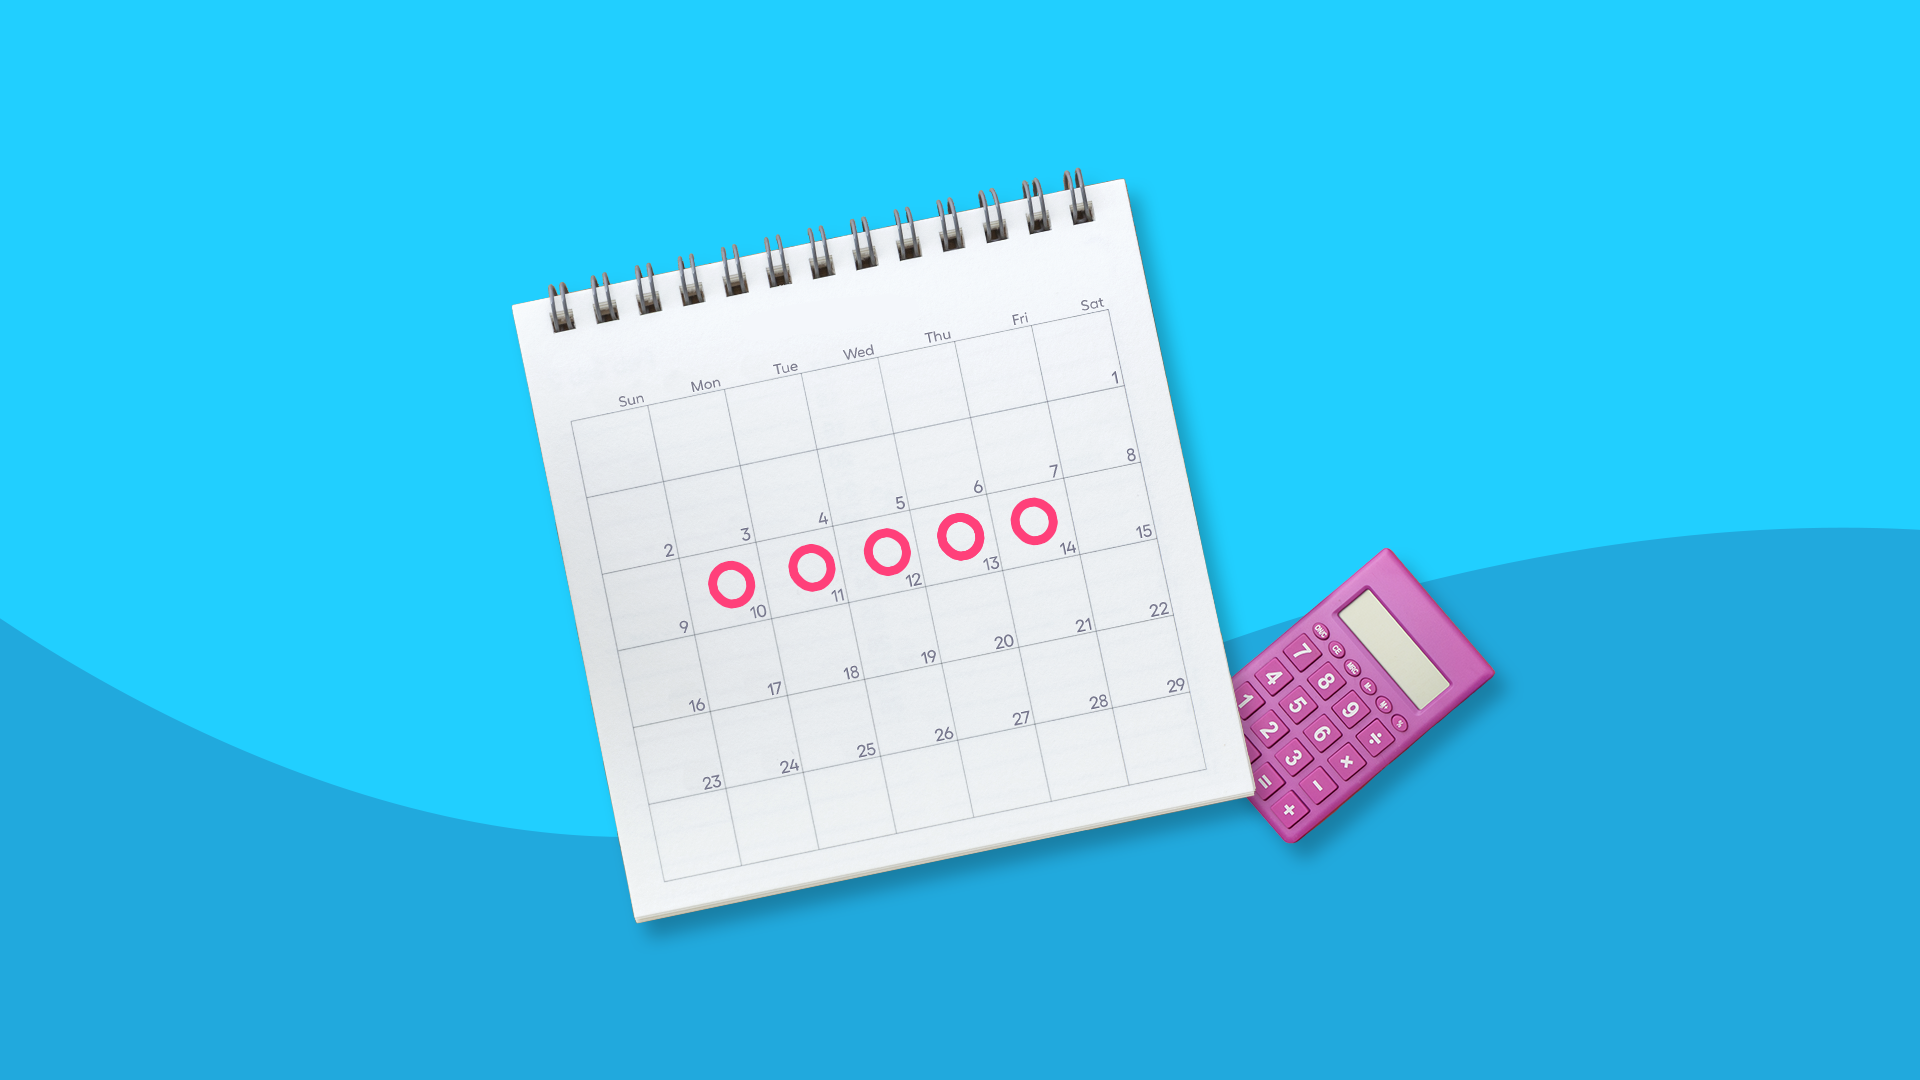 Ovulation 101: Learn more about cycles, calculators, and conception